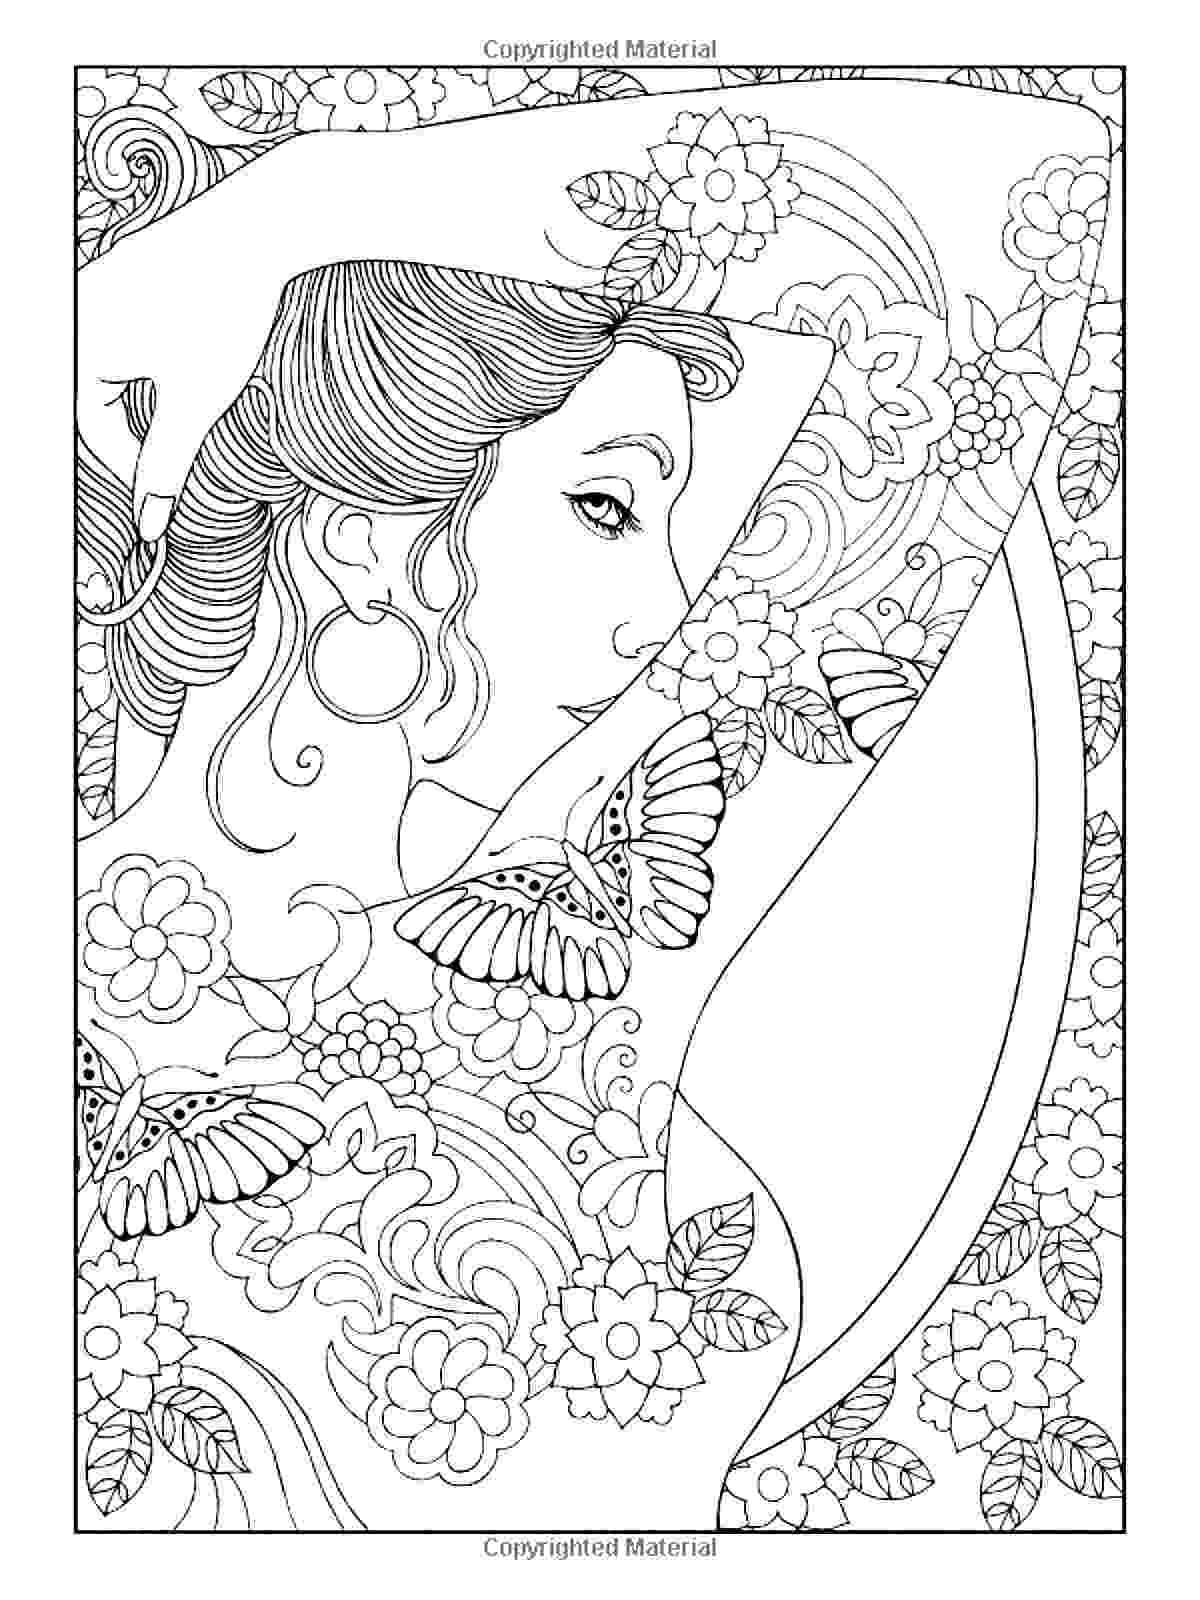 coloring pages for tattoos free coloring page coloring adult shoulder tattooed woman coloring pages tattoos for